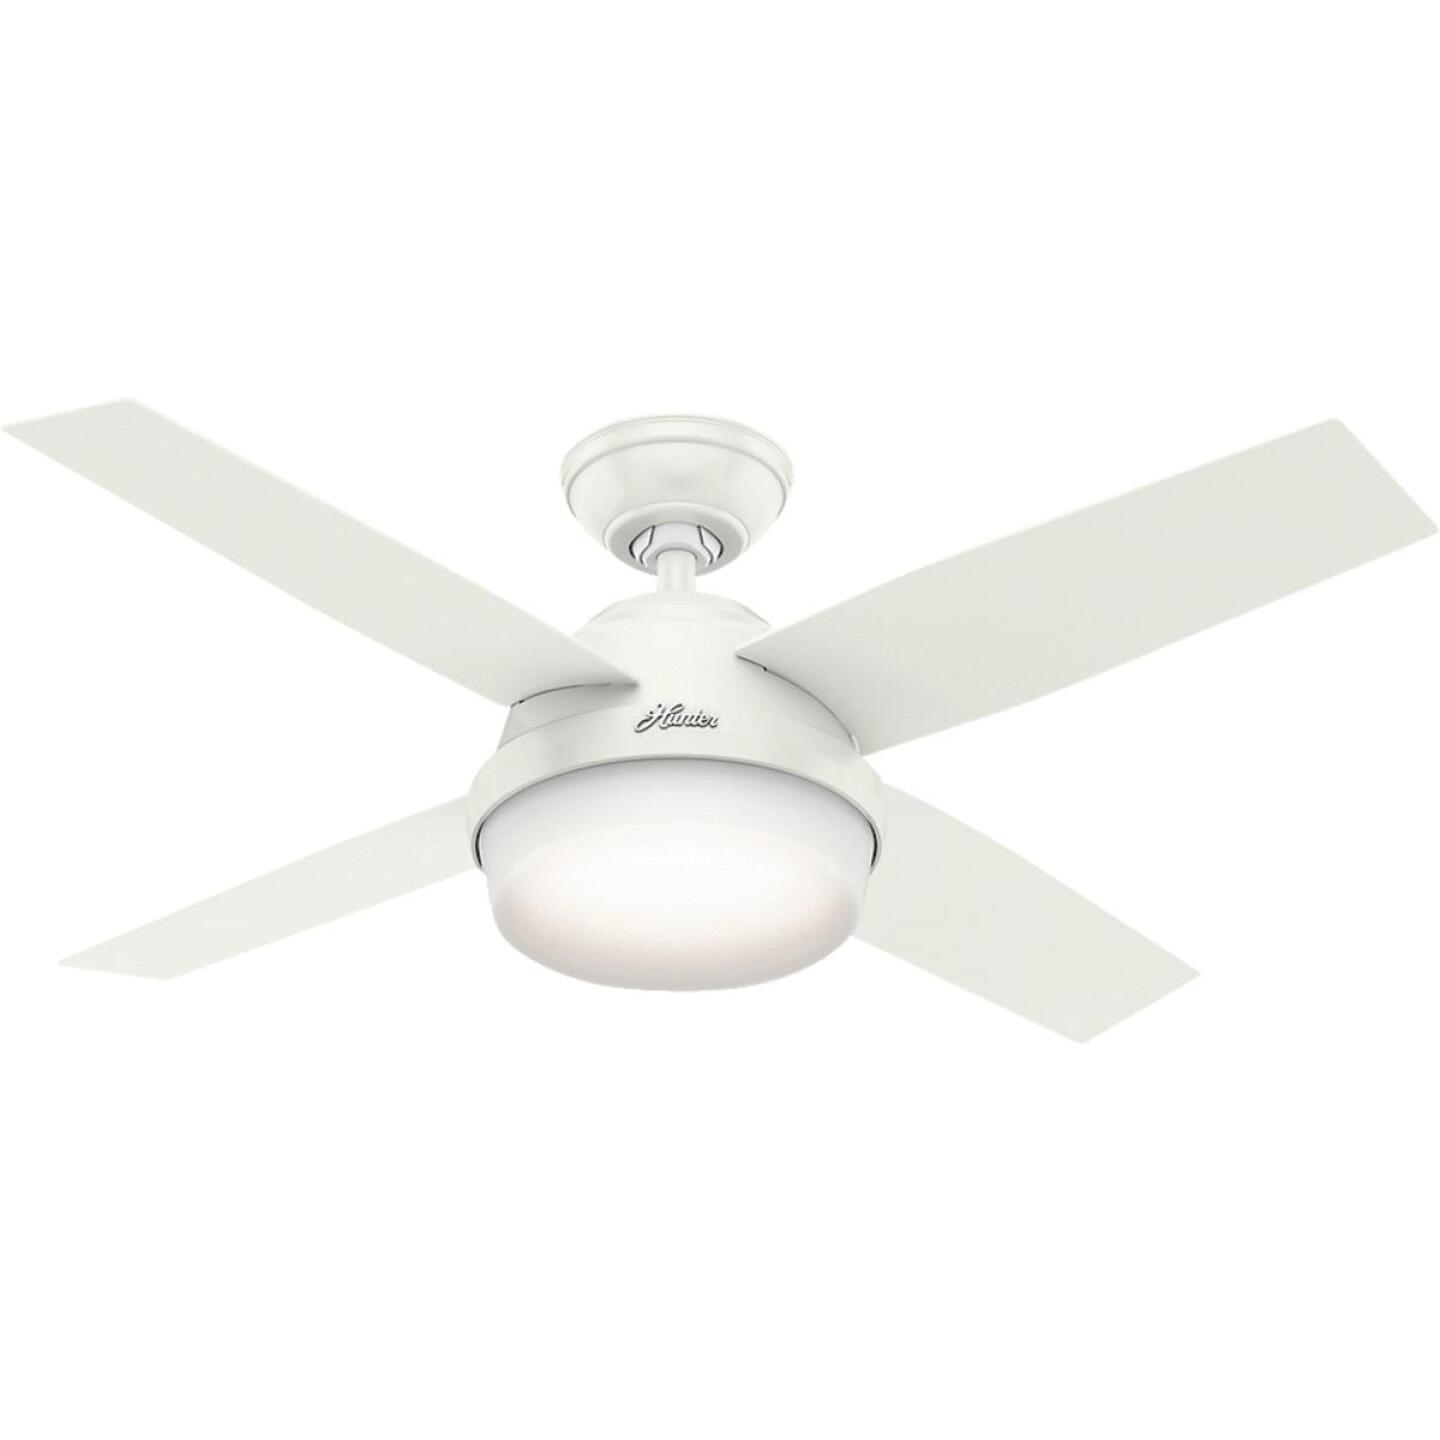 Hunter Dempsey 44 In. Fresh White Ceiling Fan with Light Kit Image 1